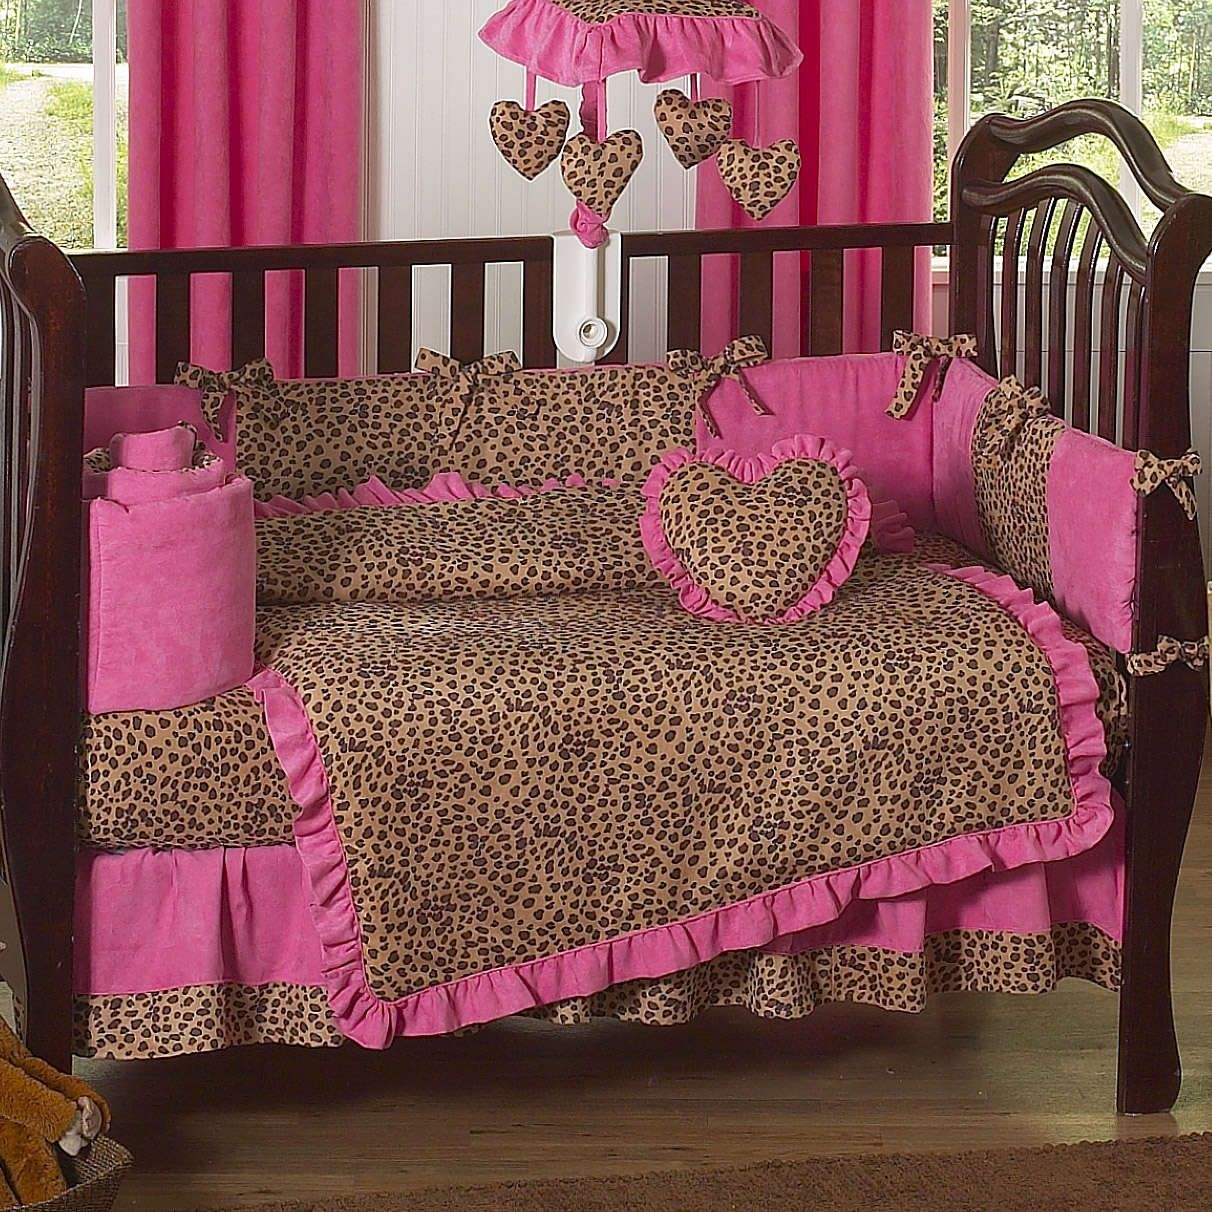 Animal print bedroom sets - Cheetah Girl Room Decorating Ideas Cheetah Hot Pink And Leopard Print 9 Piece Crib Bedding